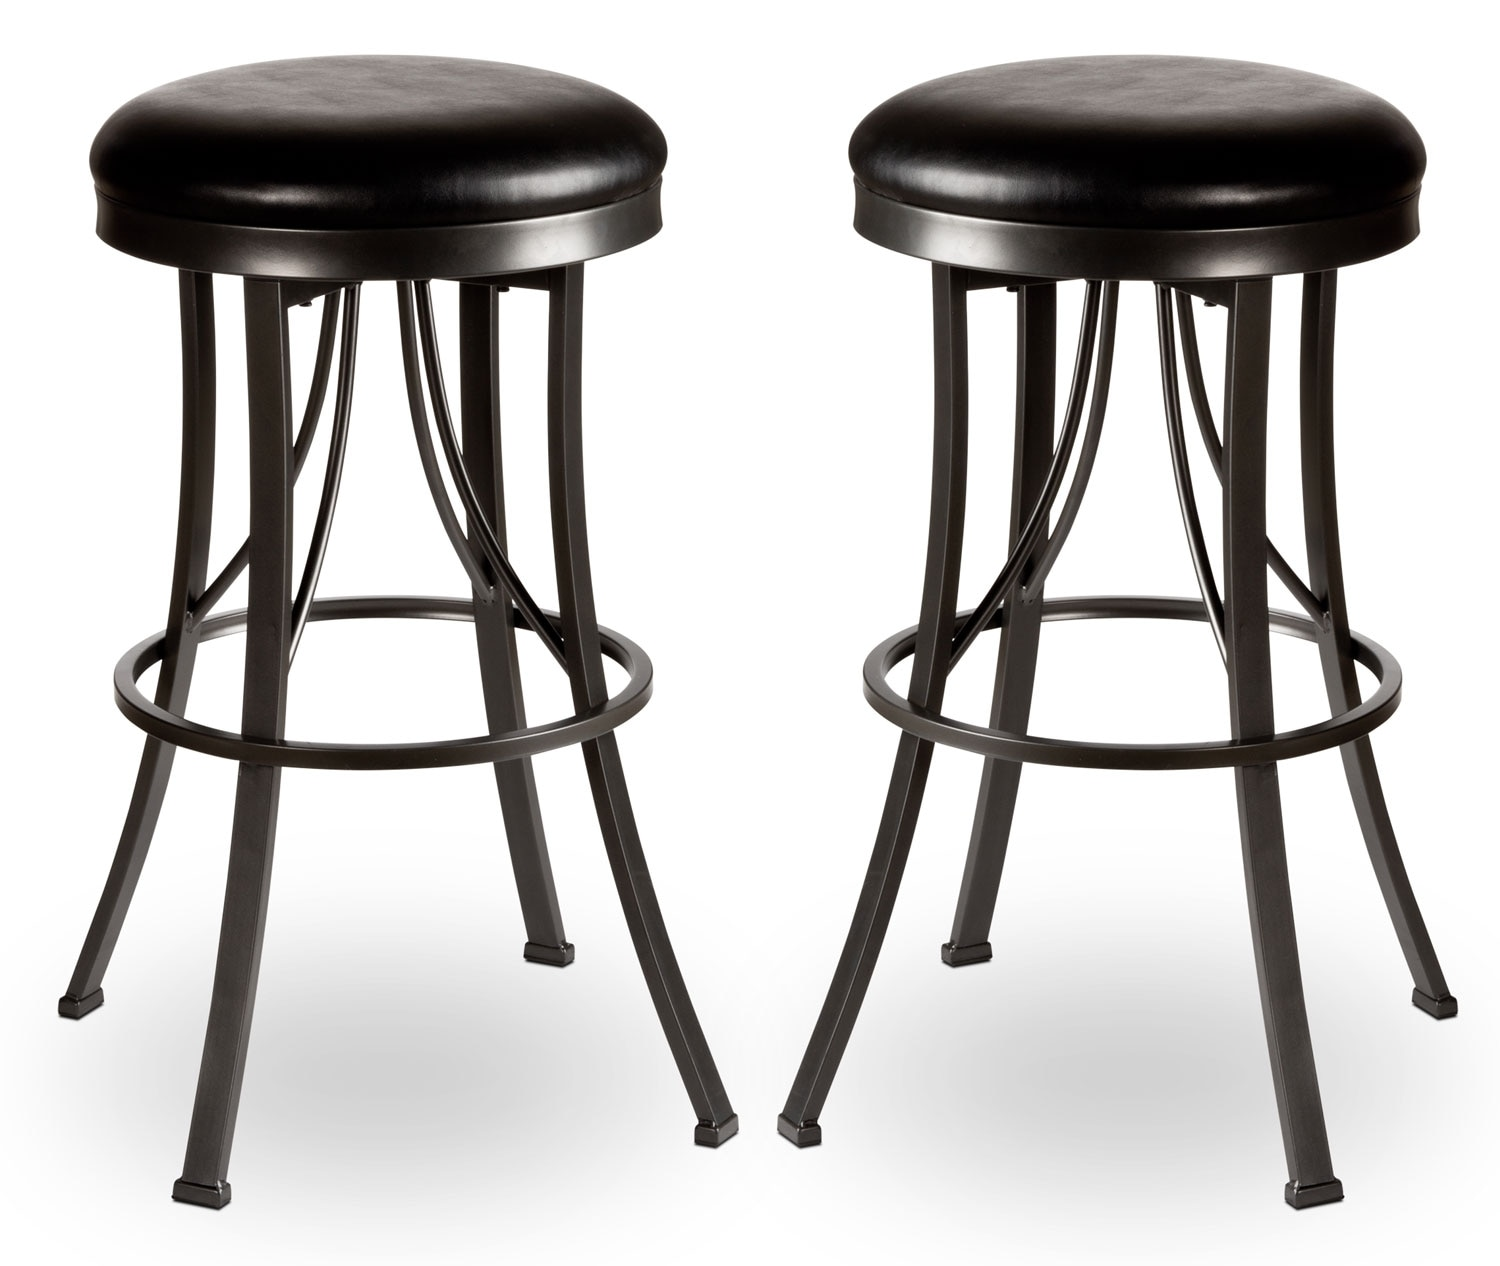 Ontario Backless Counter Height Swivel Stool Set of 2  : 374128 from www.thebrick.com size 1500 x 1266 jpeg 366kB